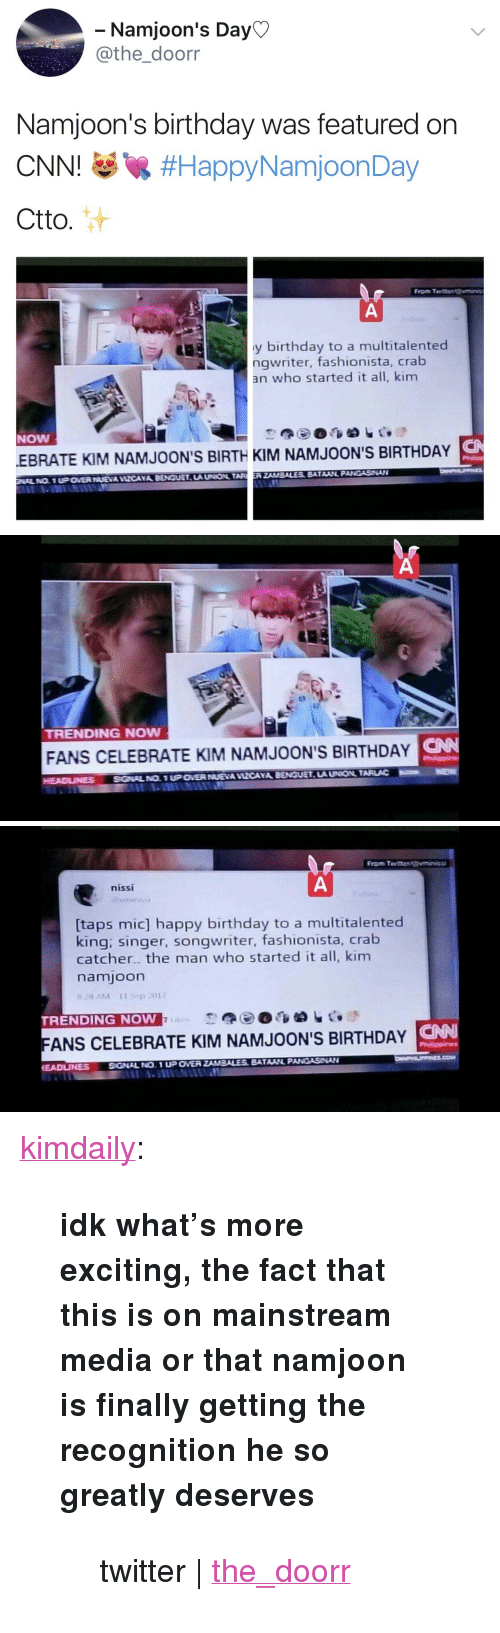 "Kim Namjoon: Namjoon's Day  athe_doorr  Namjoon's birthday was featured on  CNNI #HappyNamjoonDay  Ctto.  From T  y birthday to a multitalented  ngwriter, fashionista, crab  an who started it all, kim  NOW  S  EBRATE KIM NAMJOON'S BIRTH KIM NAMJOON'S BIRTHDAY  LA UNION TARERZAMBALES BATAAINL PANGASNAN   TRENDING NOw  CNN  FANS CELEBRATE KIM NAMJOON'S BIRTHDAY   nissi  [taps mic] happy birthday to a multitalented  king: singer, songwriter, fashionista, crab  catcher. the man who started it all, kim  namjoon  TRENDING NOW  FANS CELEBRATE KIM NAMJOON'S BIRTHDAY N  EADUNNESSGNAL NO. 1 UP OVER <p><a href=""http://kimdaily.tumblr.com/post/165274590943"" class=""tumblr_blog"">kimdaily</a>:</p><blockquote> <p><b>idk what's more exciting, the fact that this is on mainstream media or that namjoon is finally getting the recognition he so greatly deserves</b></p> <blockquote><p>twitter 